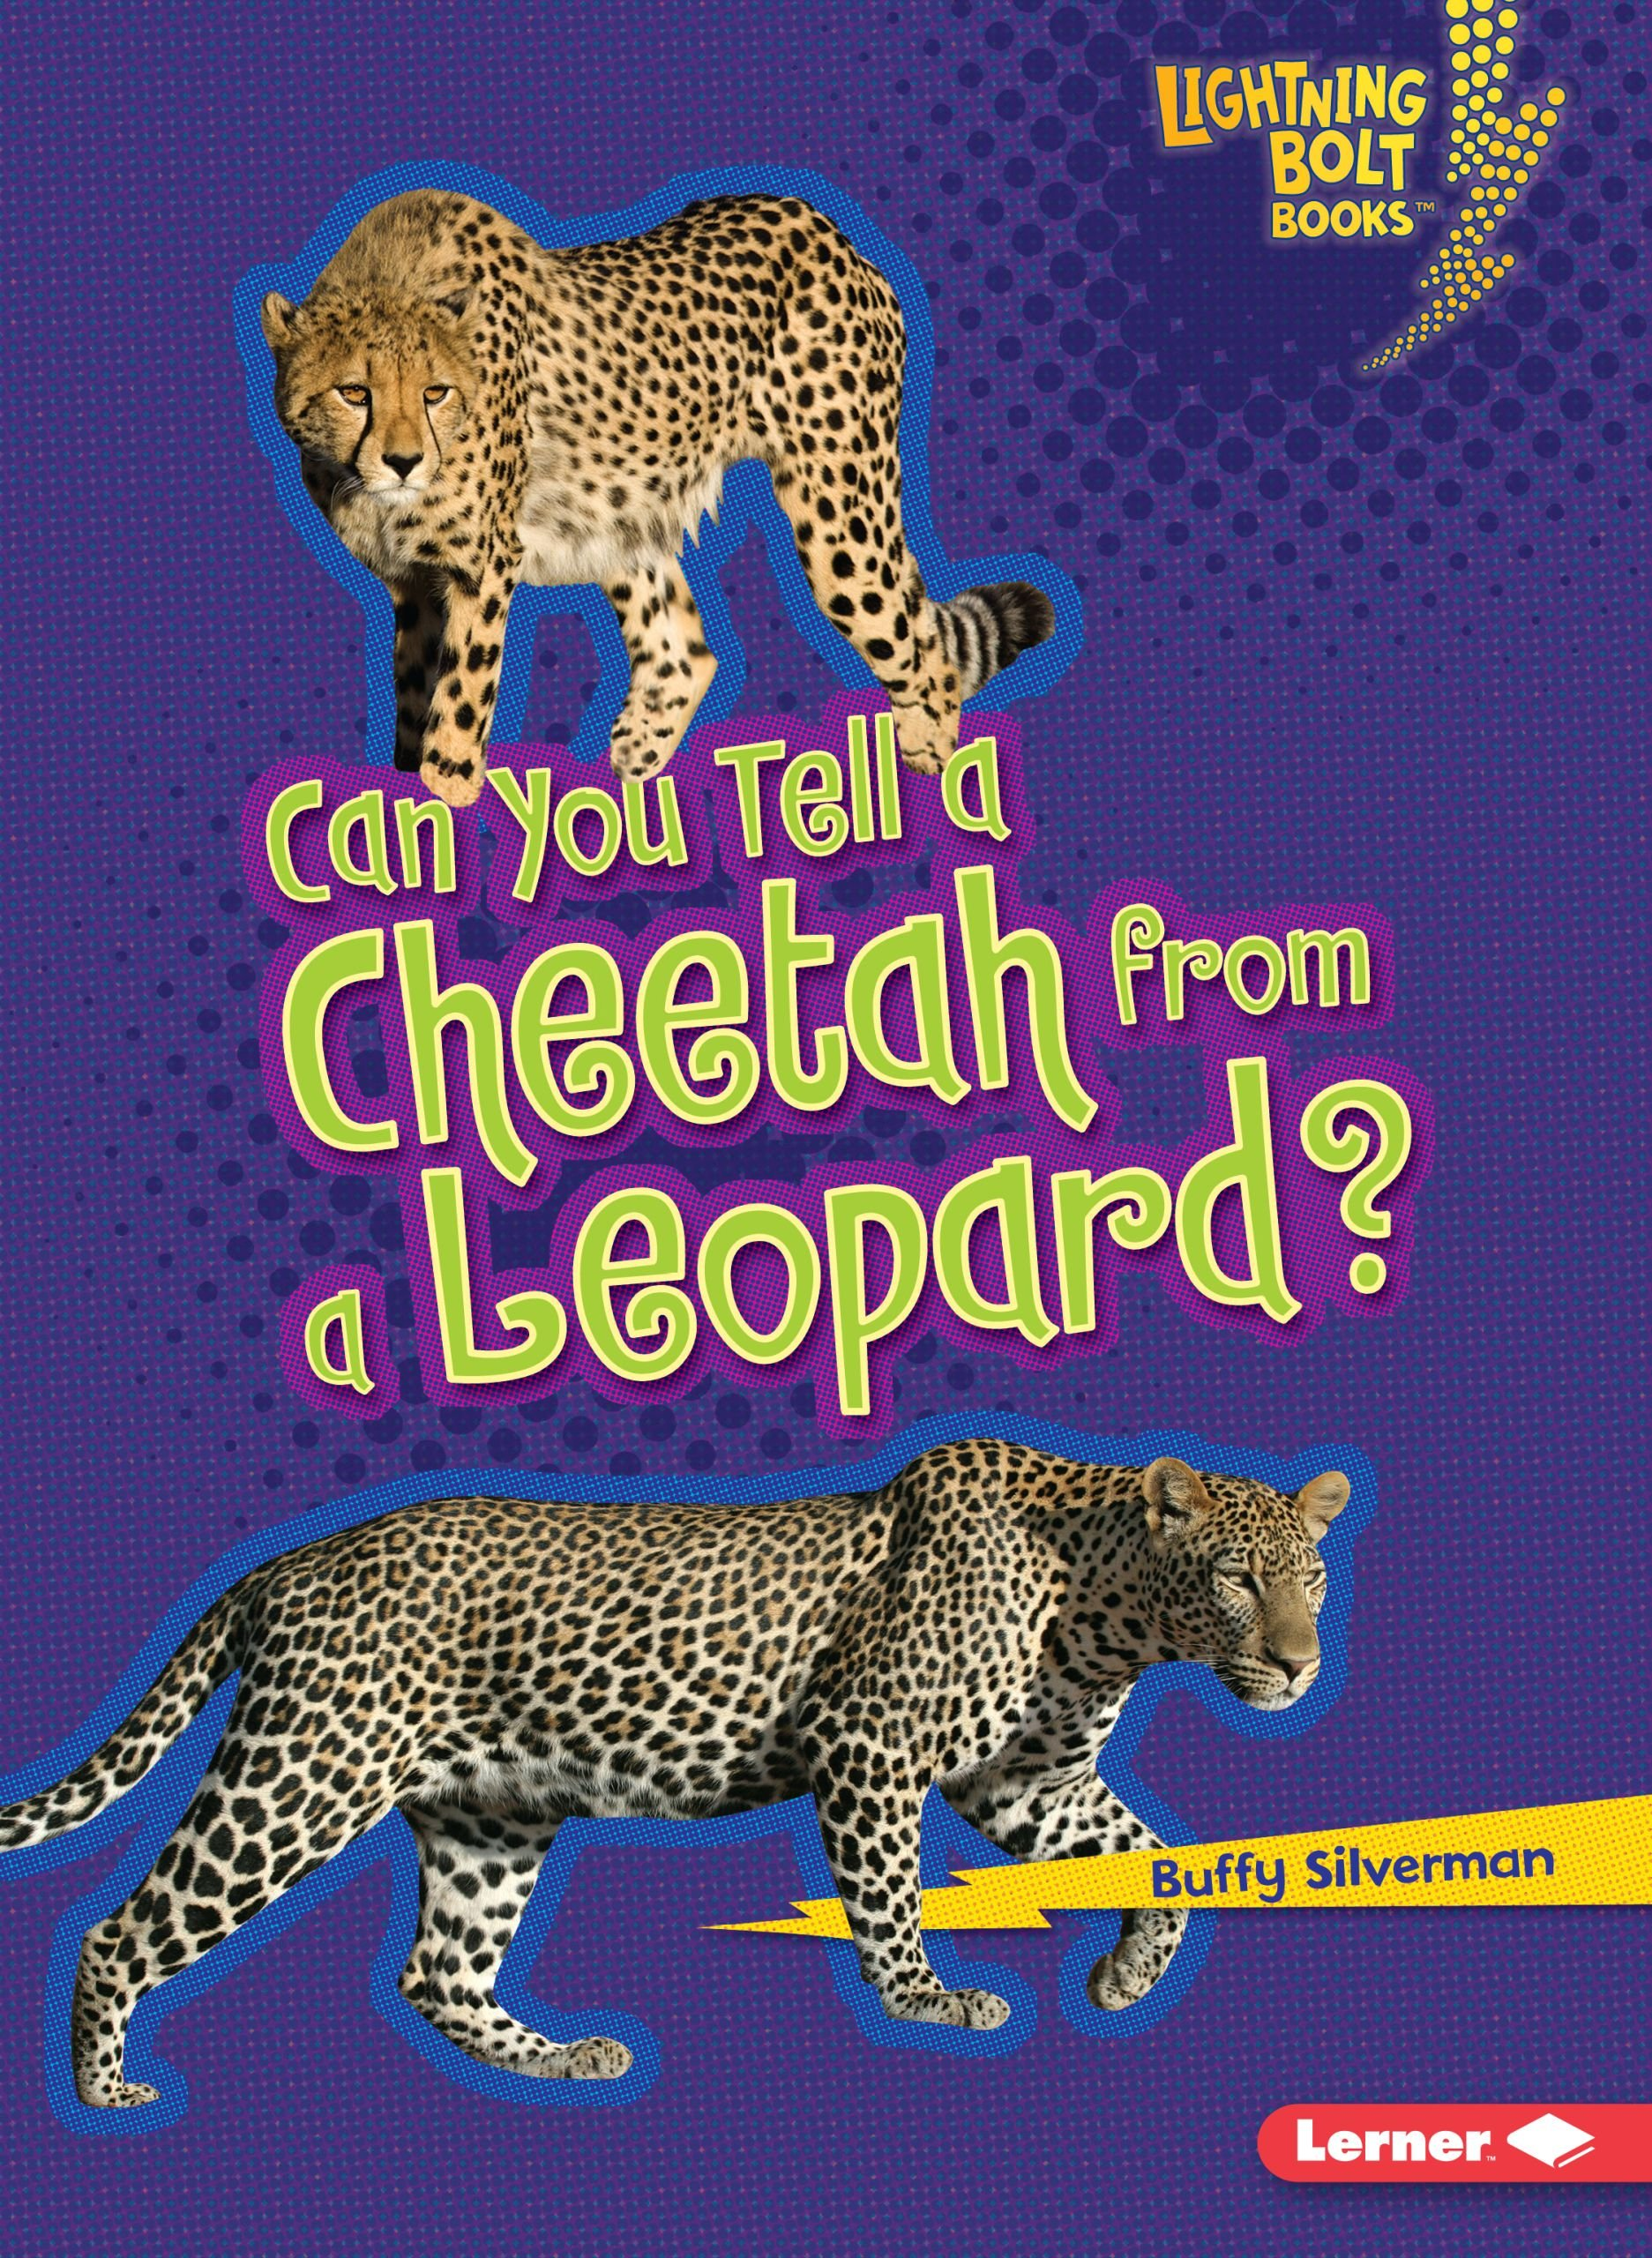 can-you-tell-a-cheetah-from-a-leopard-lightning-bolt-books